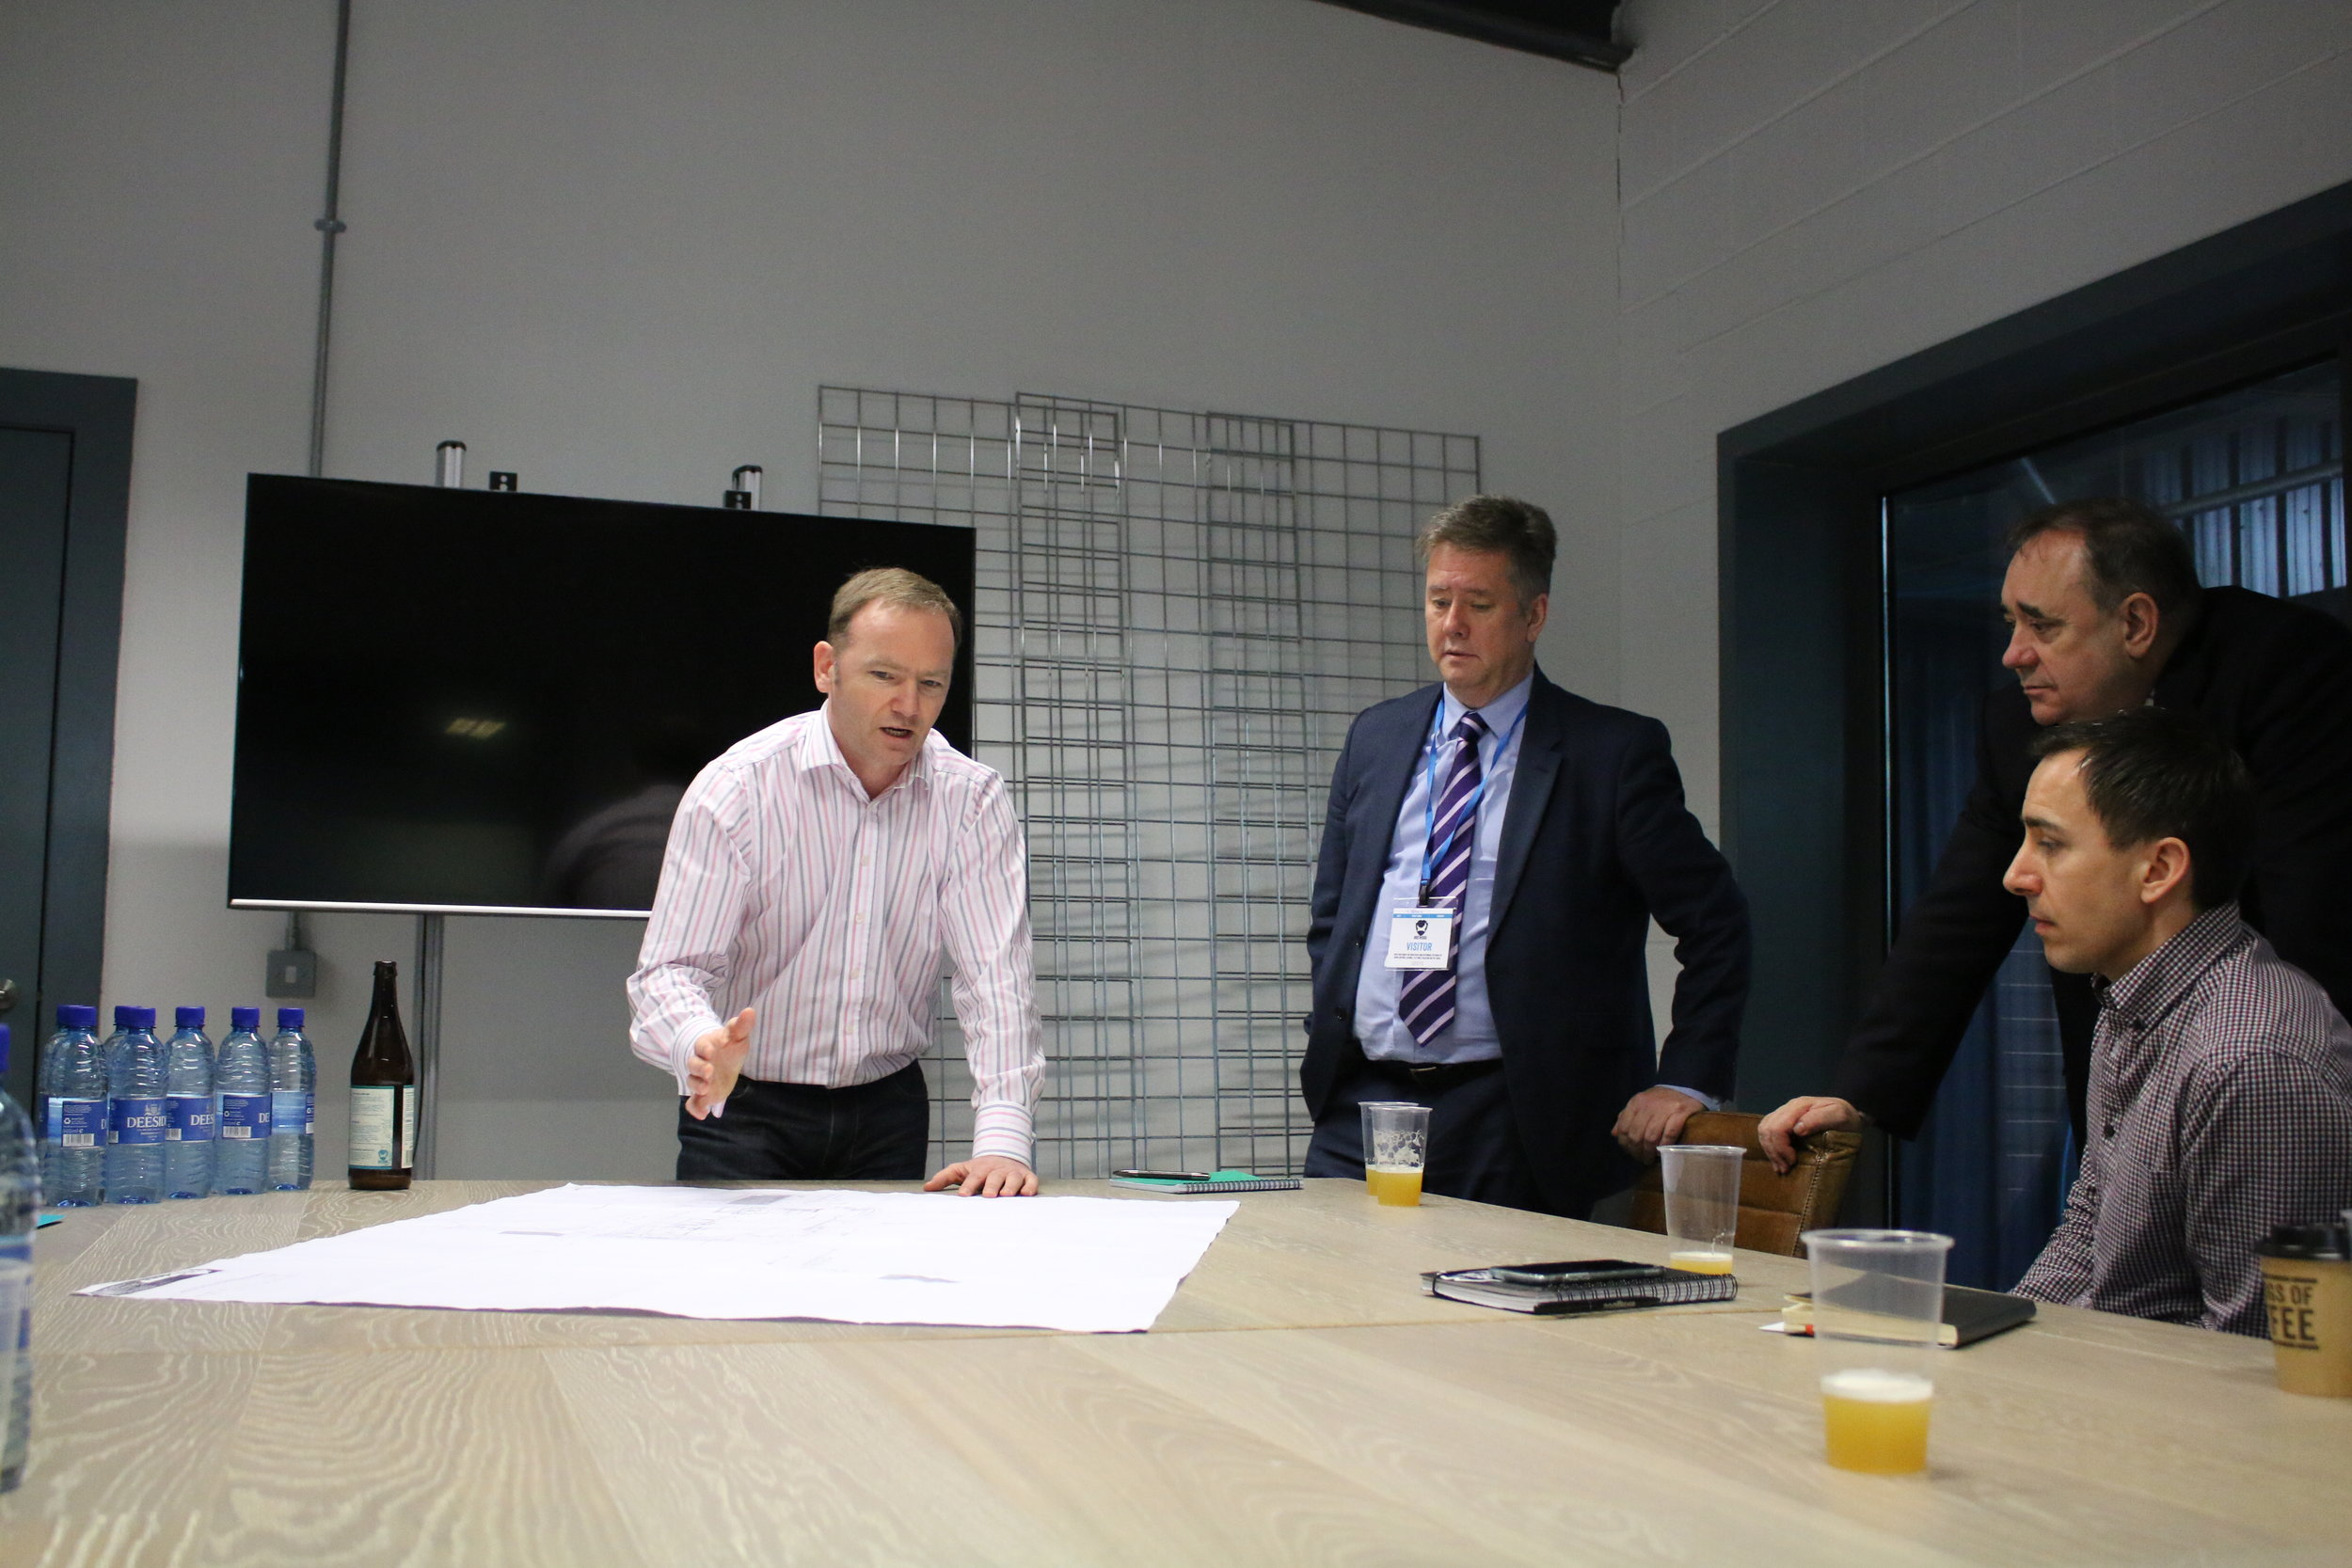 Meeting at BrewDog HQ. From left: Neil Simpson (Finance Director, BrewDog), Keith Brown MSP, Alex Salmond MP, Richard Street (Property and Legal Projects, BrewDog)